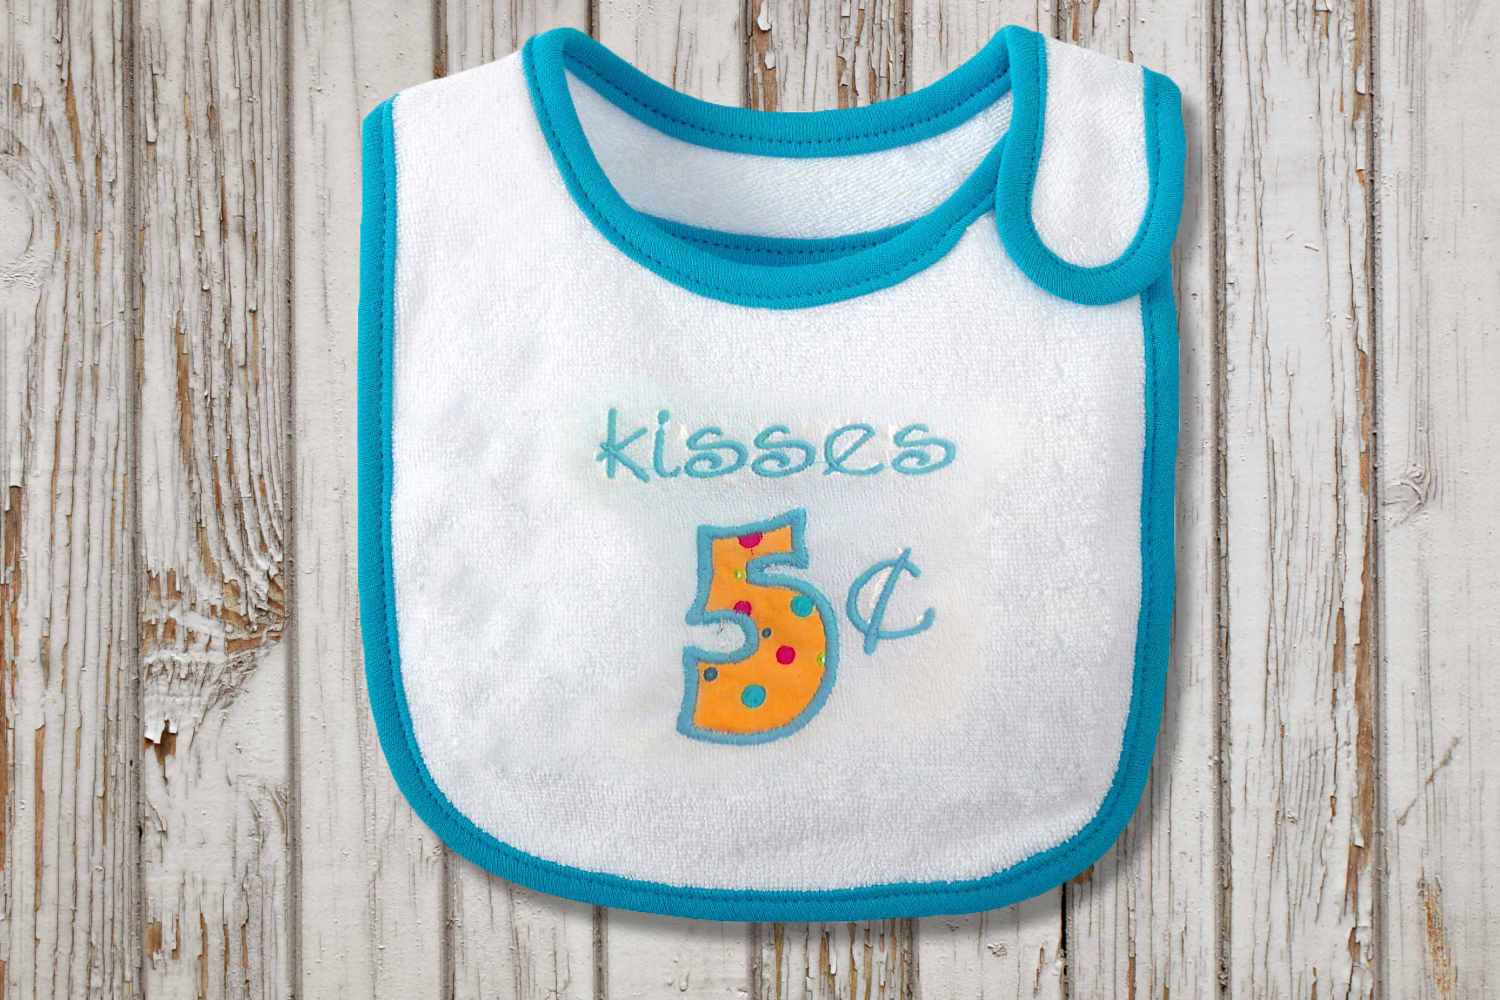 Kisses 5 Cents Valentine's Day Applique Embroidery Design example image 2